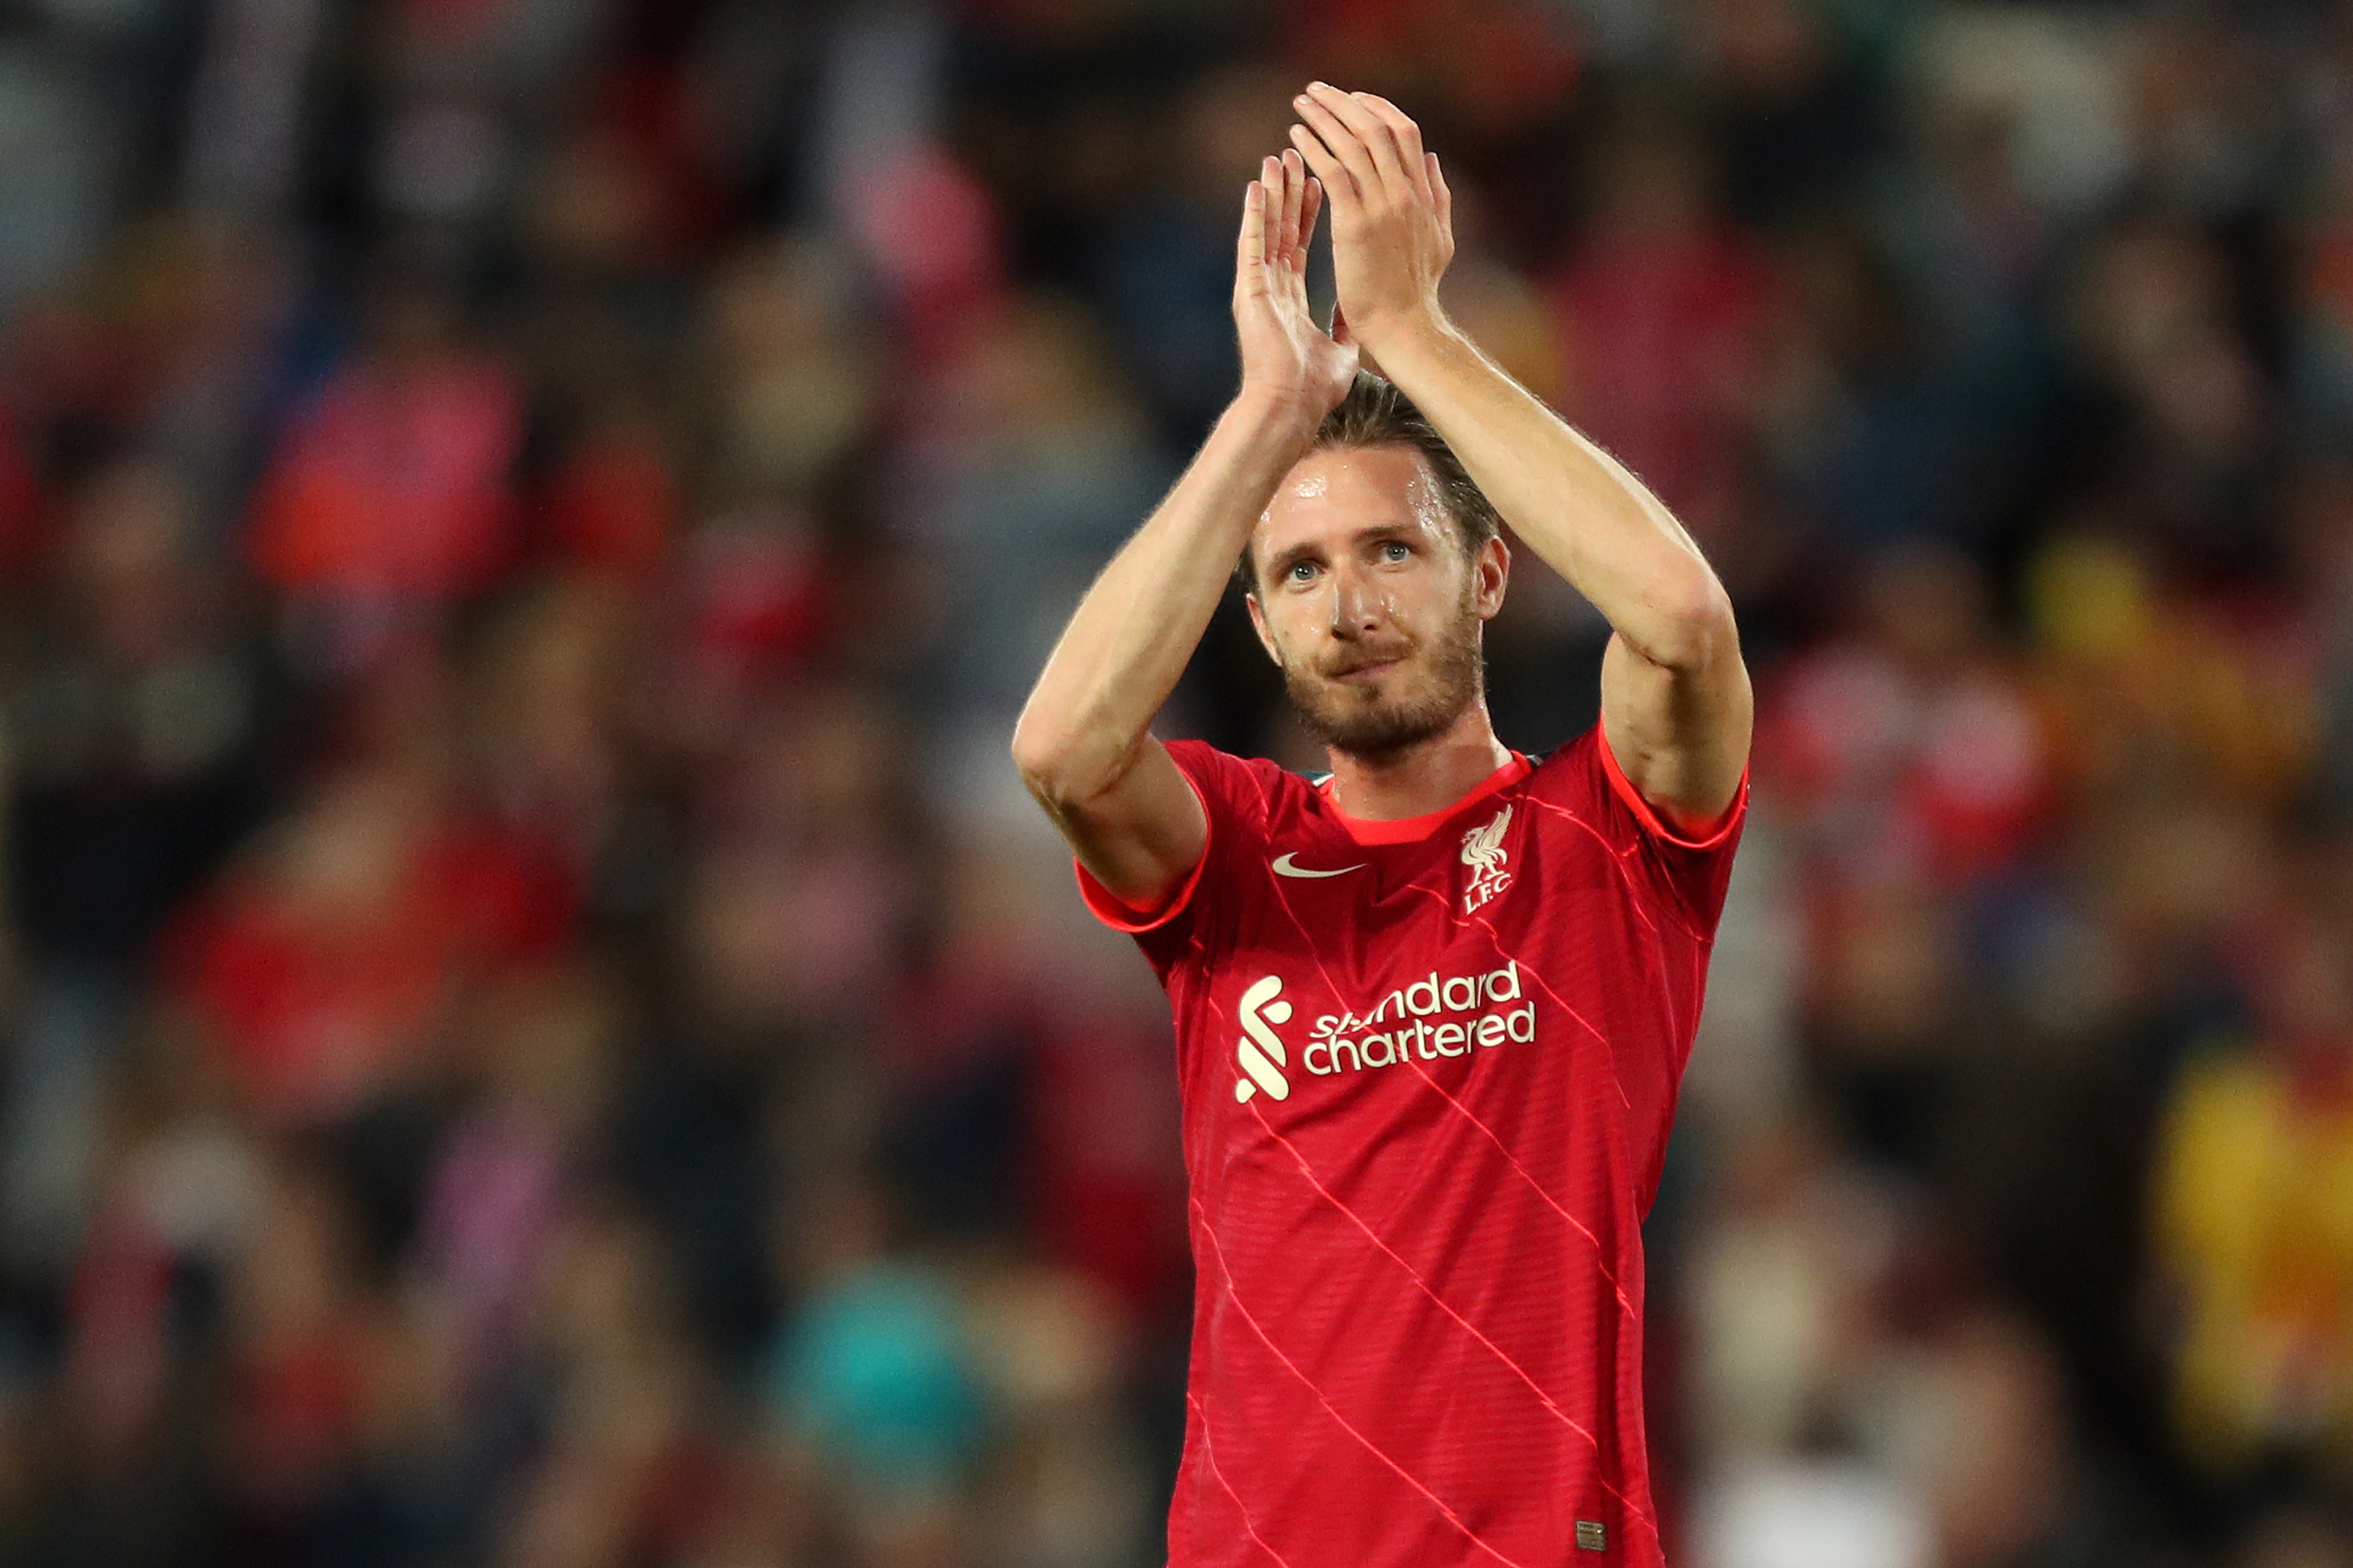 Ben Davies of Liverpool applauds the fans following victory in the Pre-Season Friendly match between Liverpool and Osasuna at Anfield on August 09, 2021 in Liverpool, England.